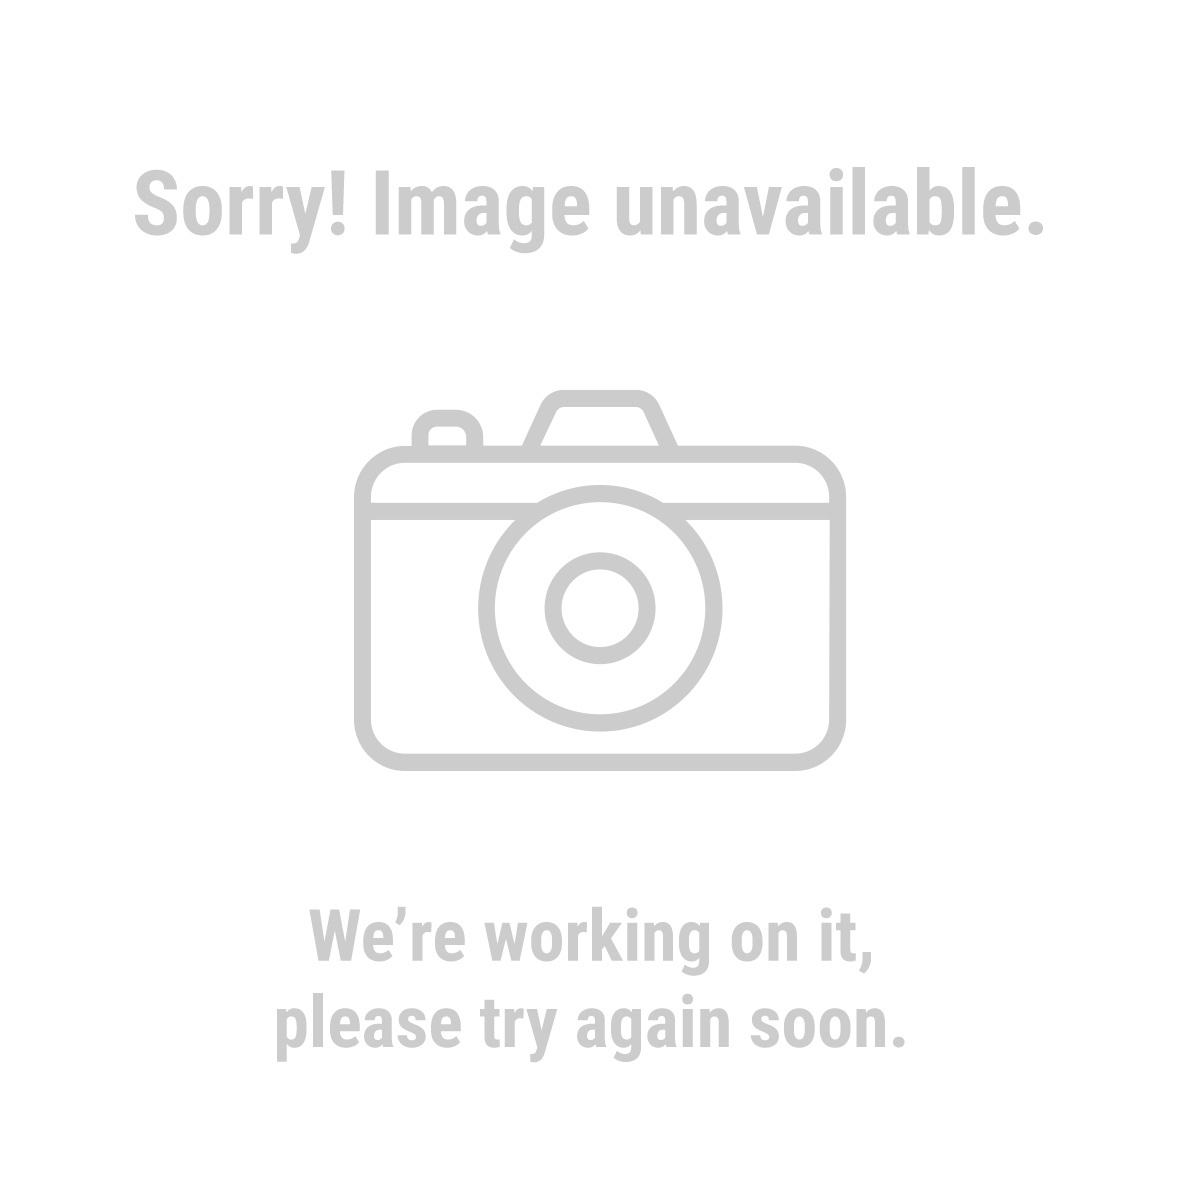 "Central Forge 92306 2"" Single Wheel Rope Pulley, 2 Piece Set"